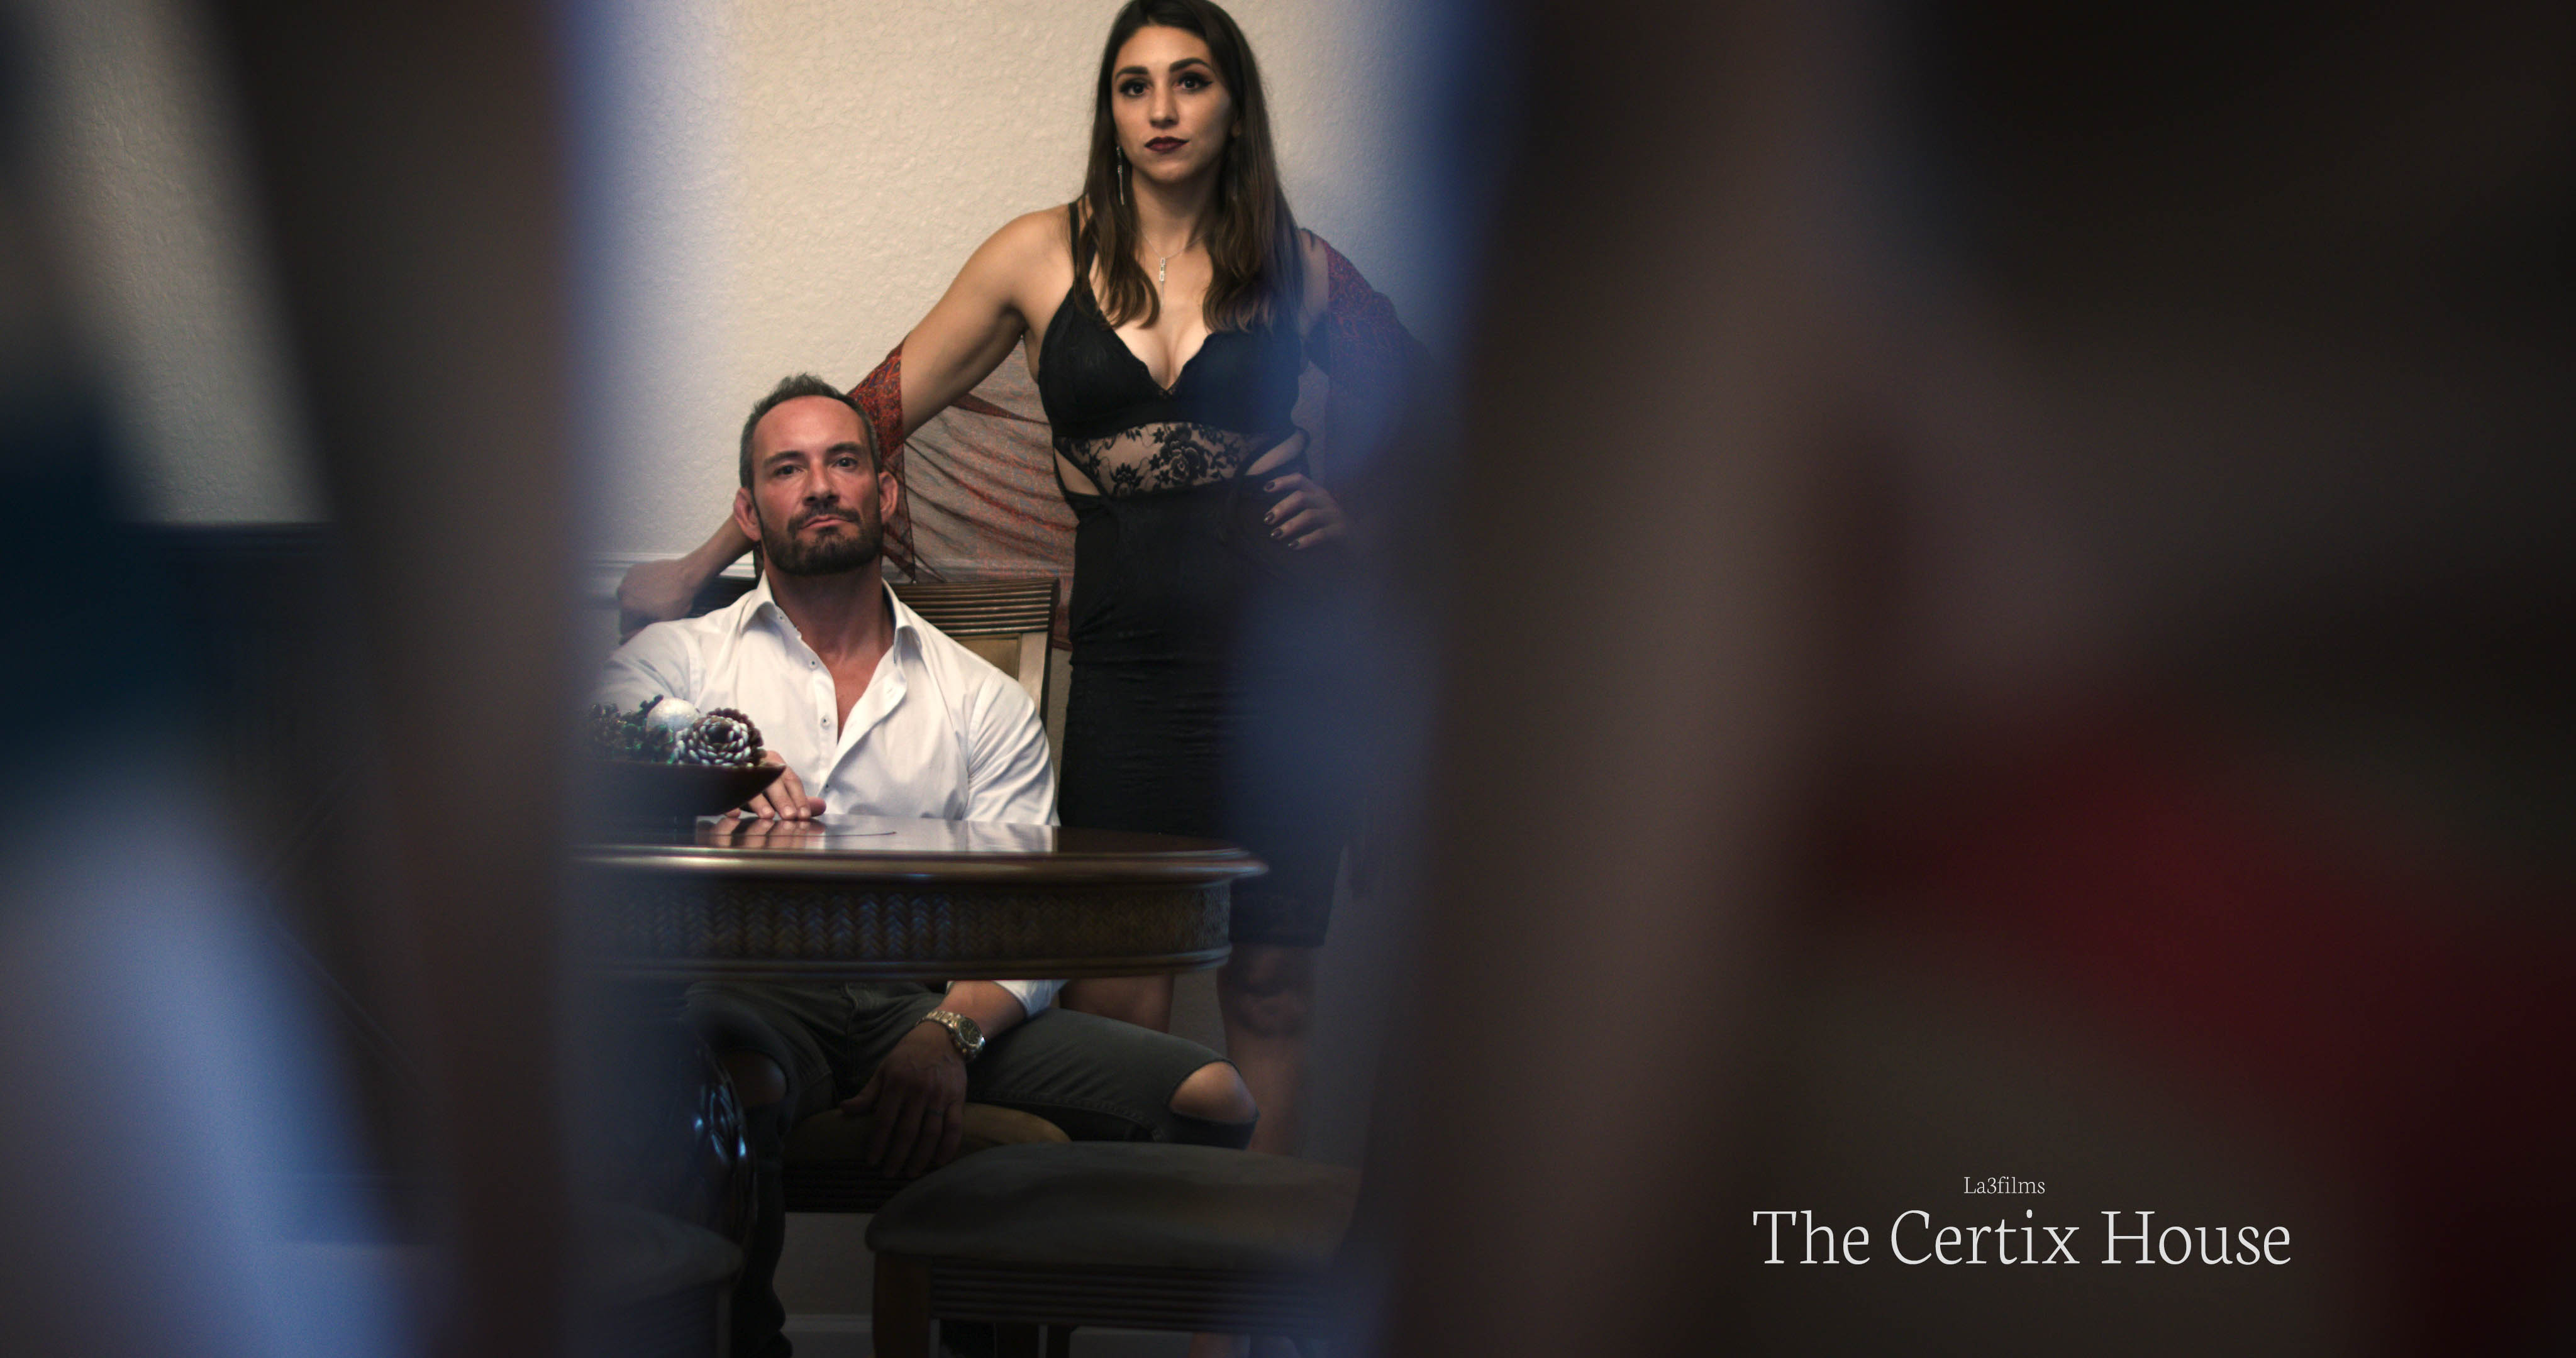 Mike McRobert and Lena Marie in The Certix House (2020)